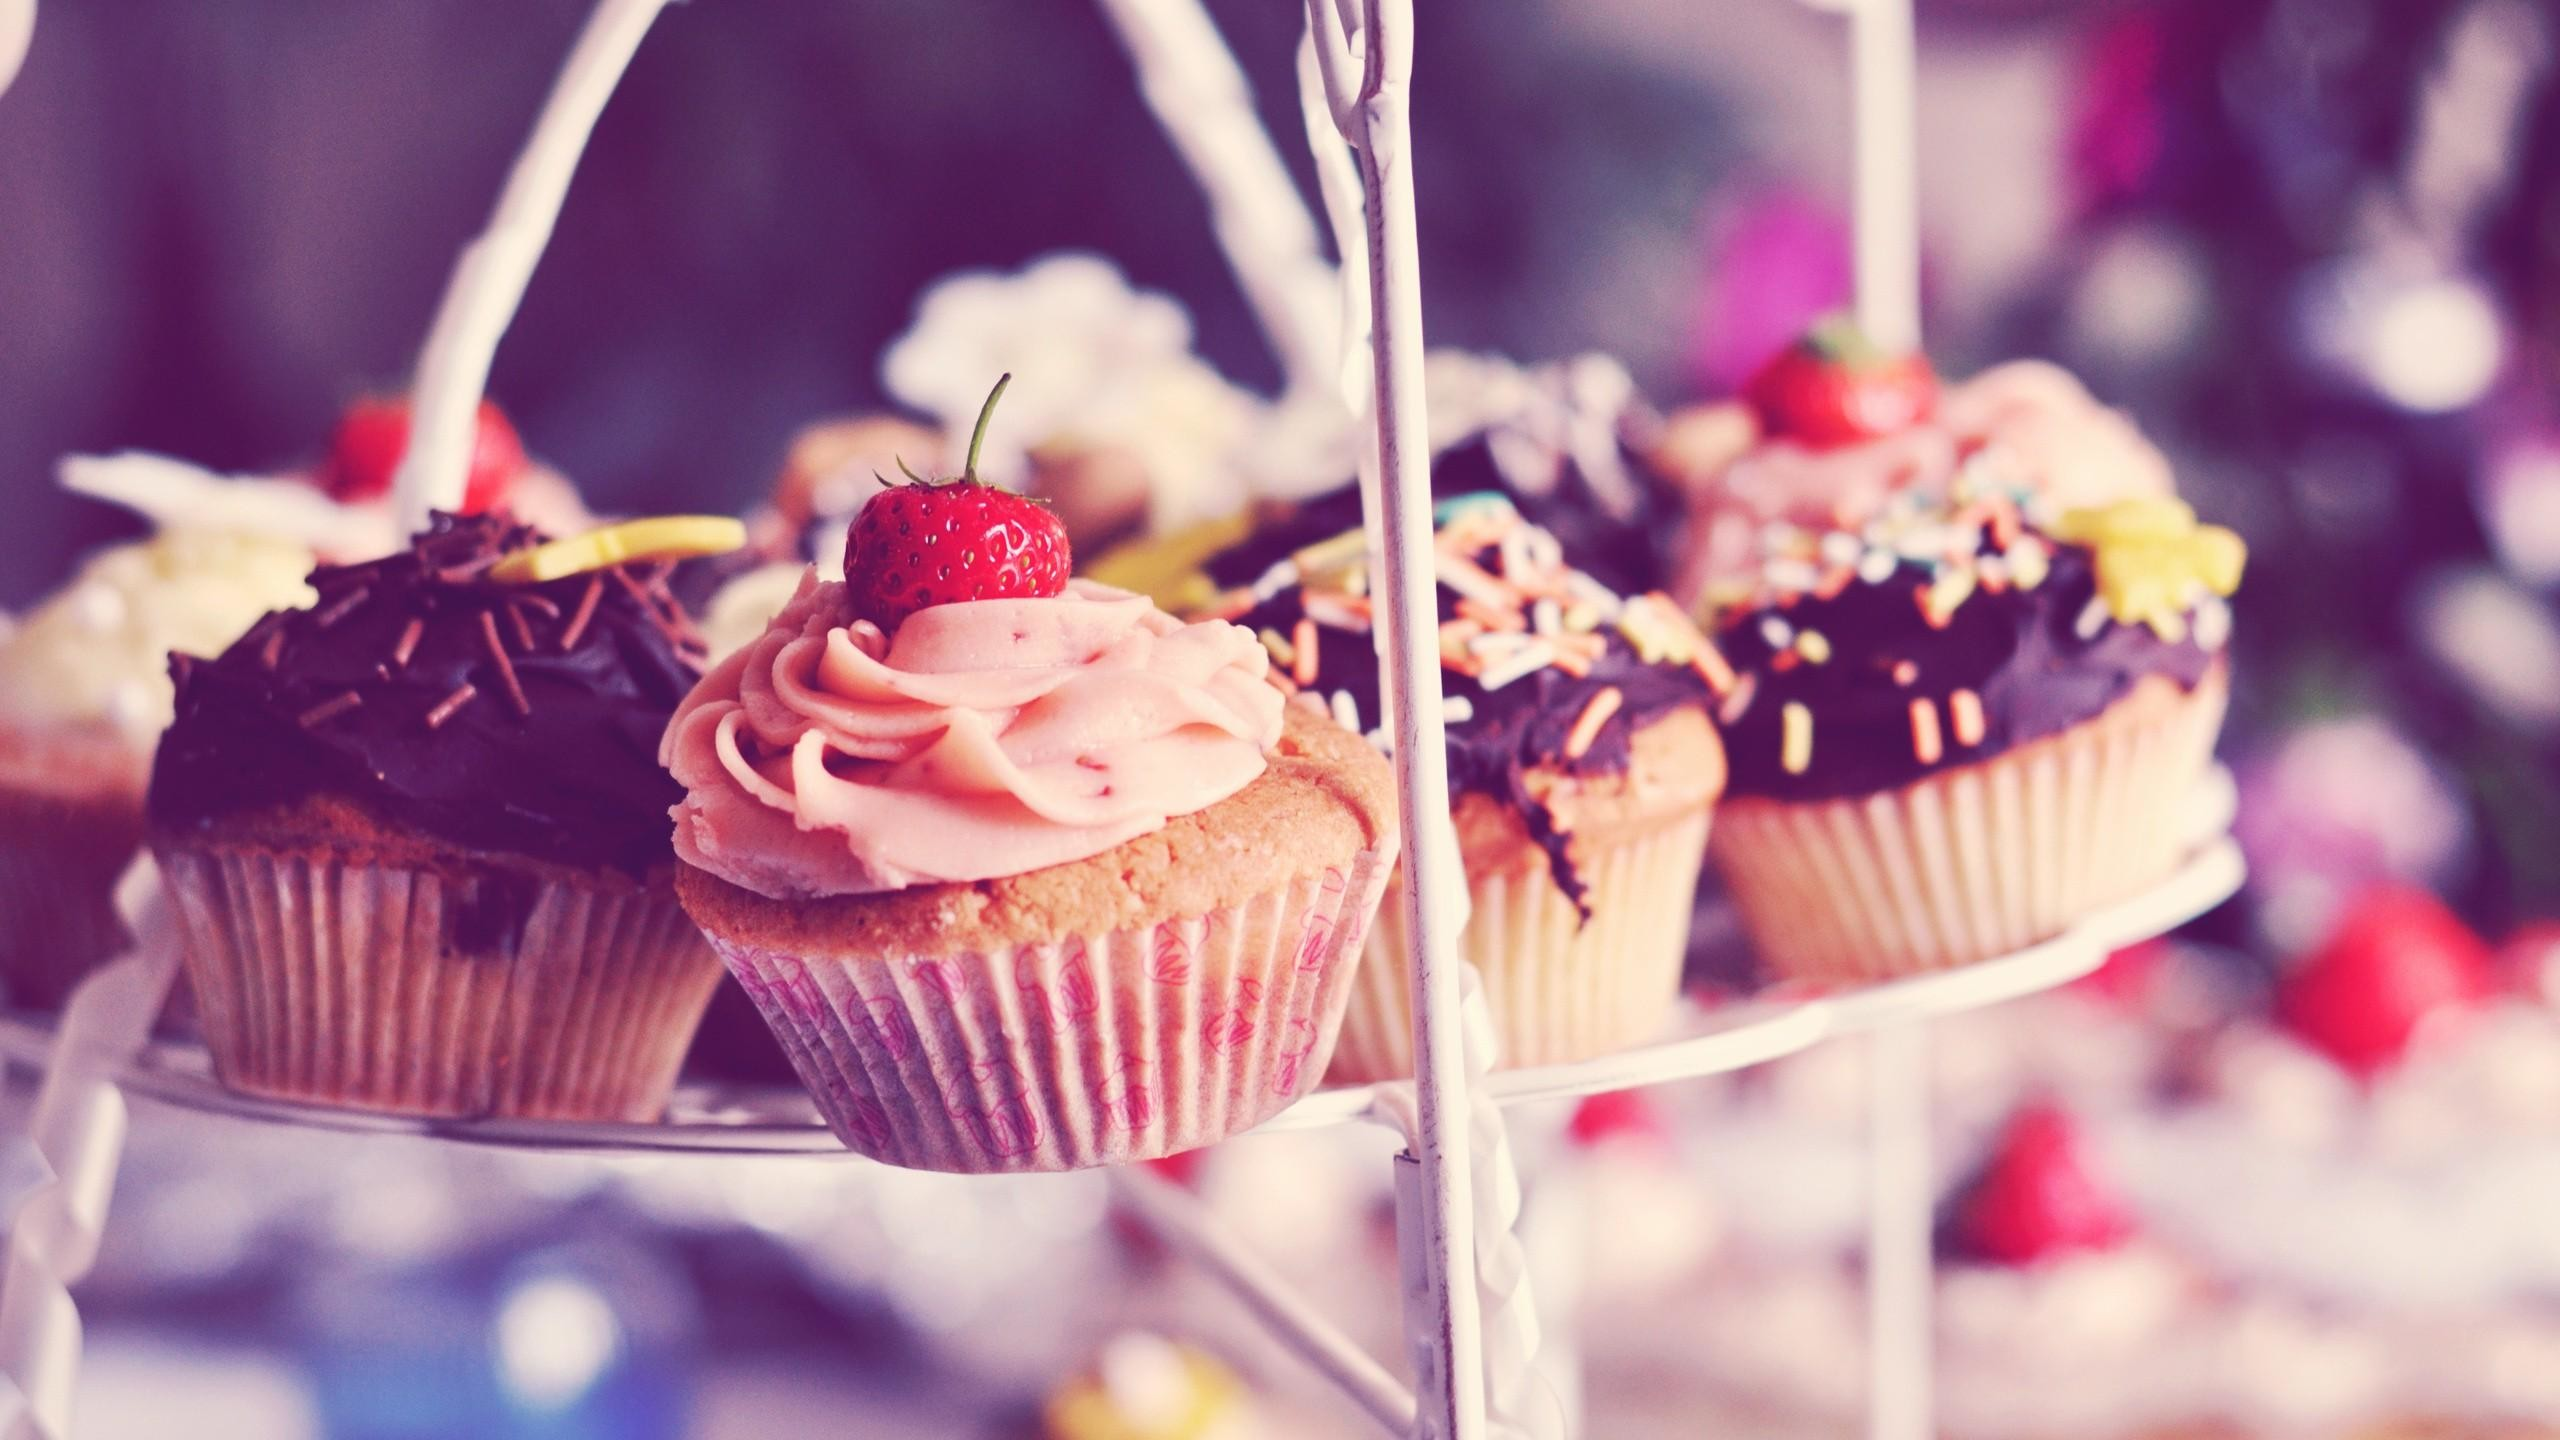 Res: 2560x1440, 164 Cupcake HD Wallpapers Backgrounds Wallpaper Abyss - HD Wallpapers